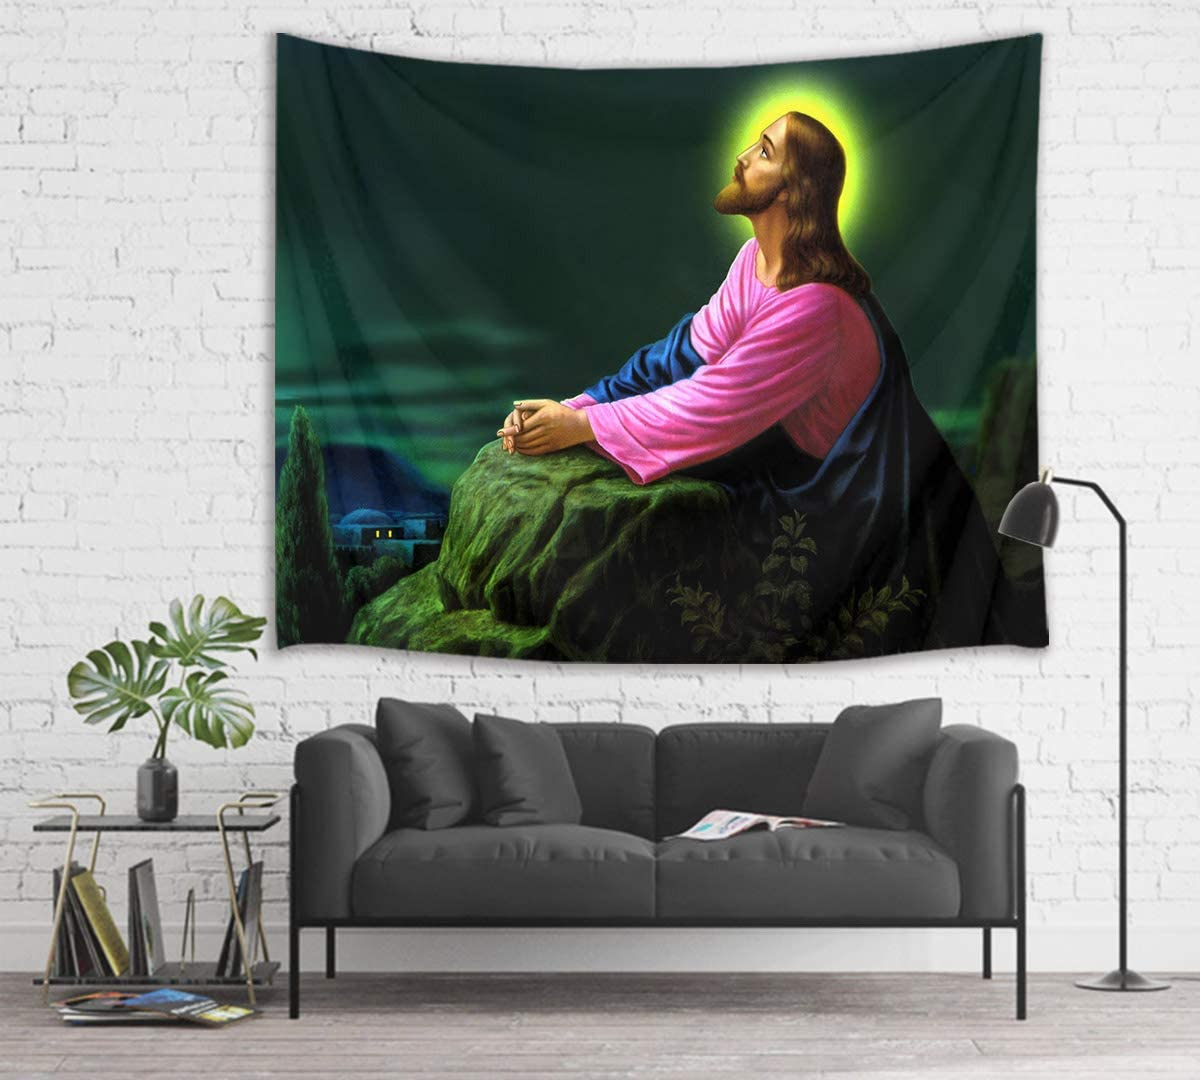 HVEST Jesus Tapestry Christ Pray in Night Wall Hanging Christian Tapestries for Bedroom Living Room Dorm Church Wall Decor,80Wx60H inches